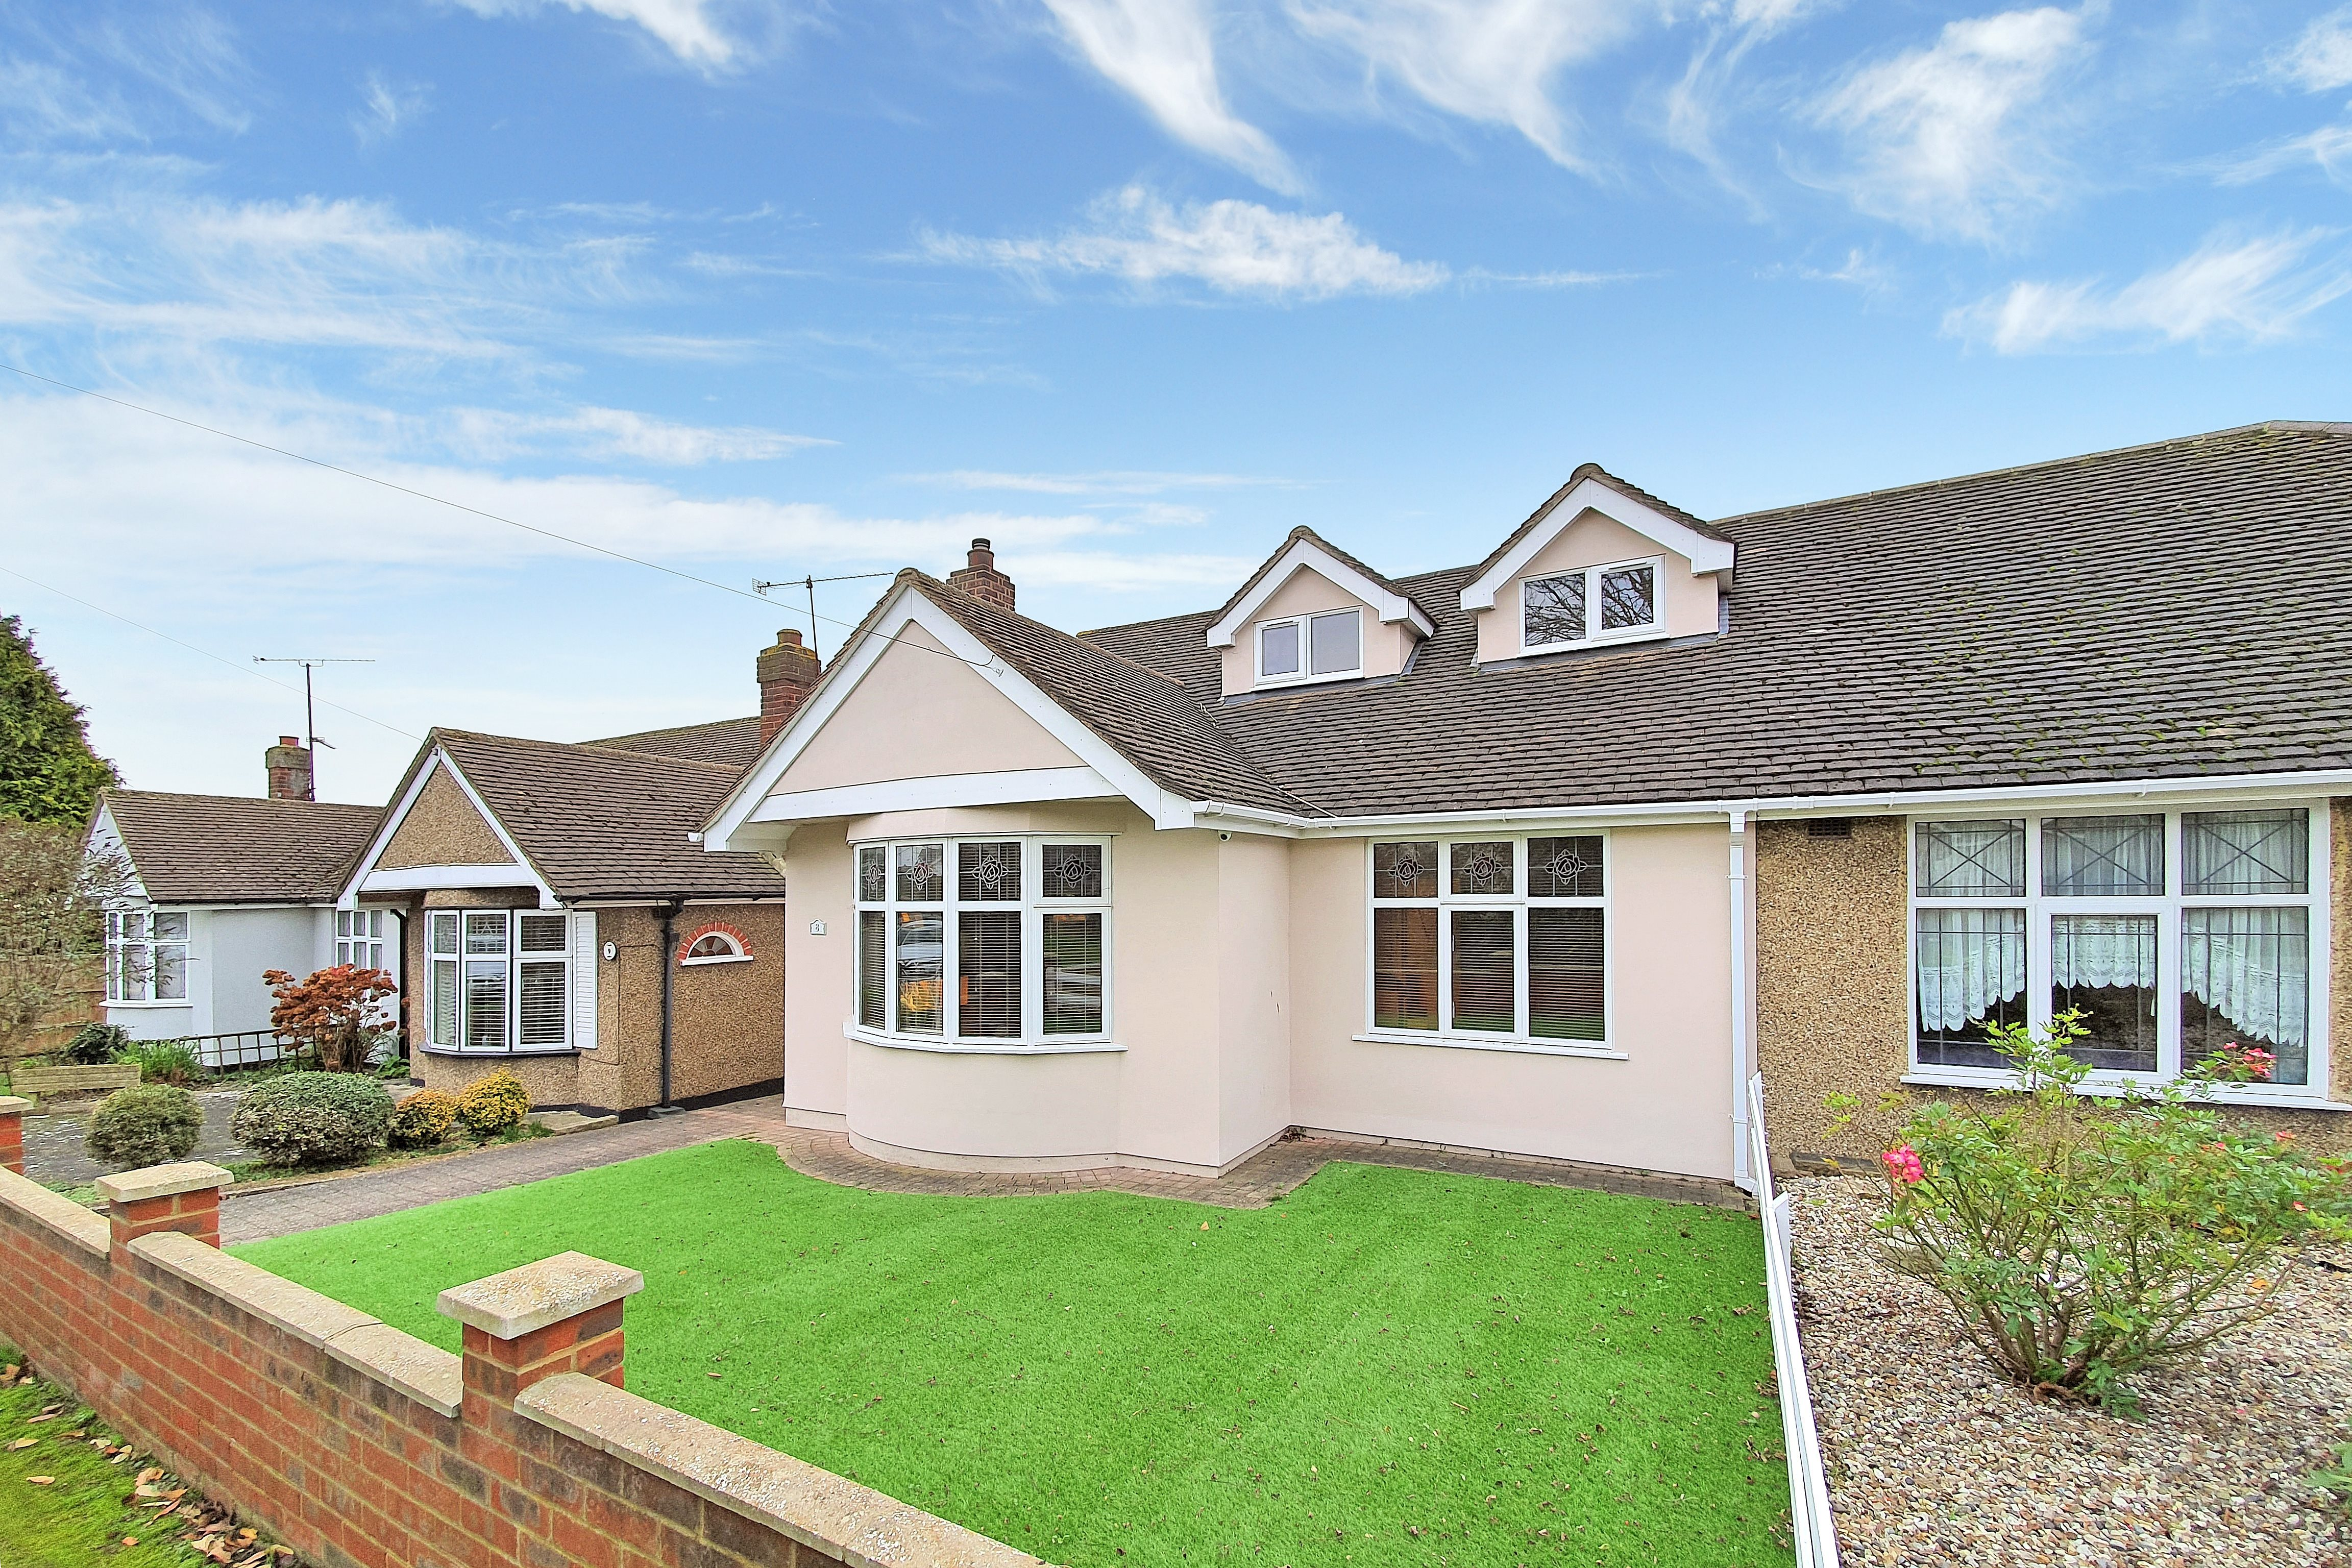 3 bed house for sale in Thames Close , Rayleigh  - Property Image 1